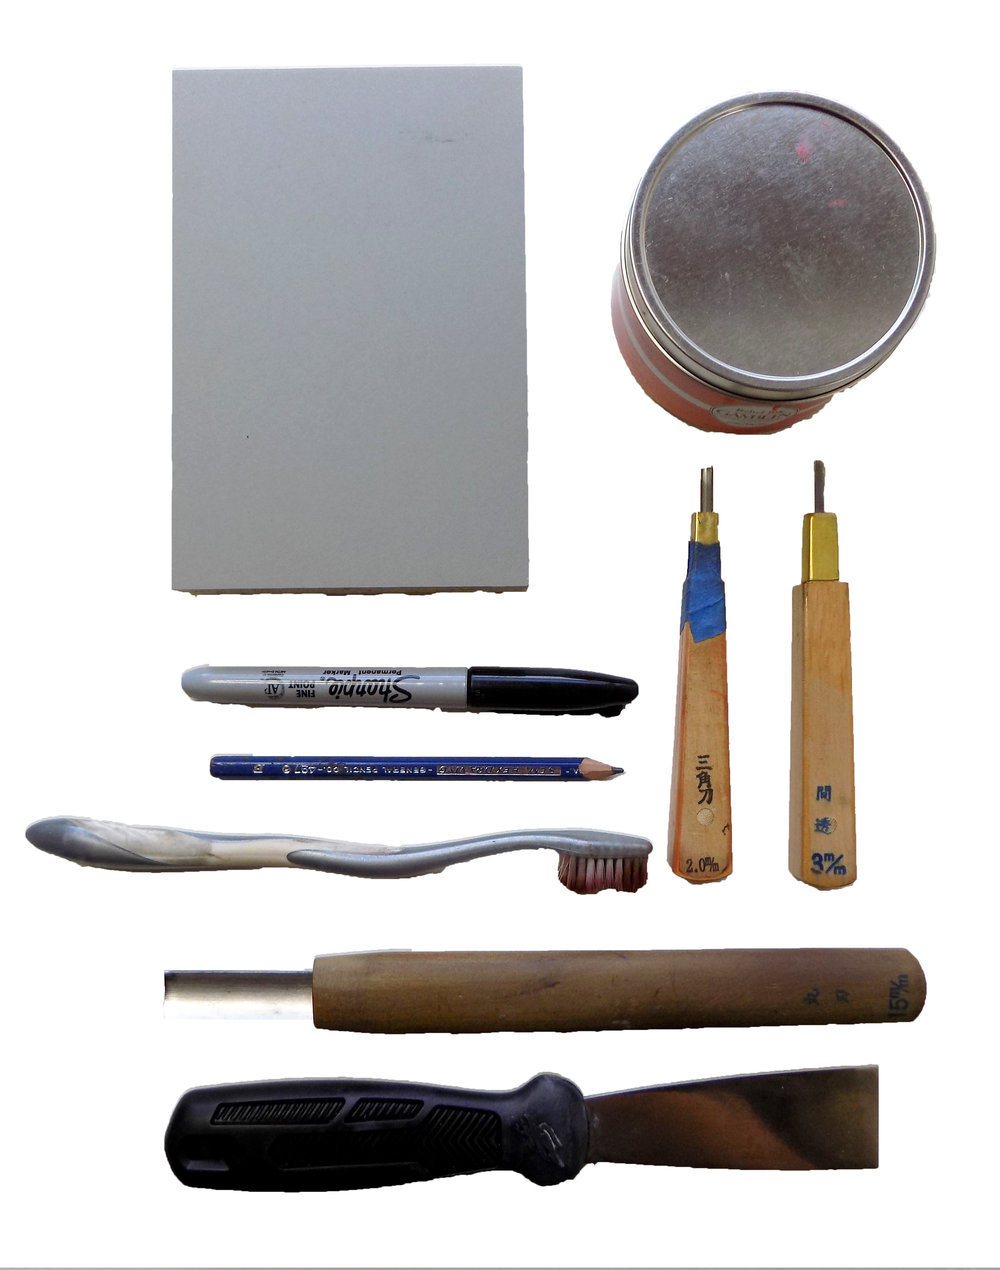 My go-to tools  for linocut preperation: lino block, ink, pencil and sharpie, toothbrush for cleaning away lino chips, small cutting tools, and a large U-gouge tool for clearing large spaces  -